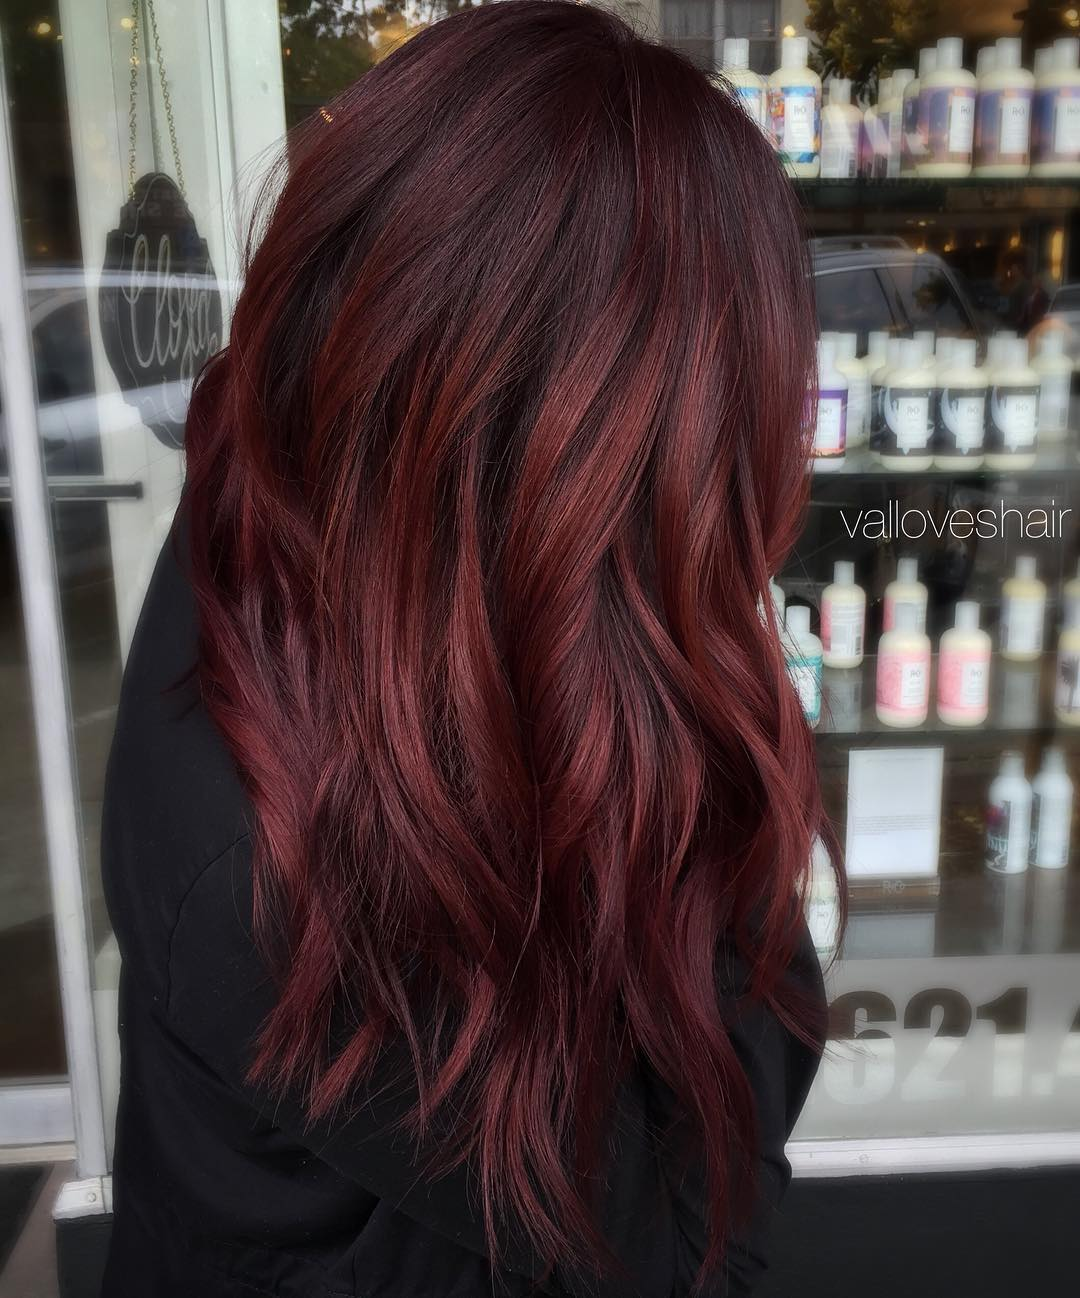 Hair Black with red tones advise to wear in spring in 2019